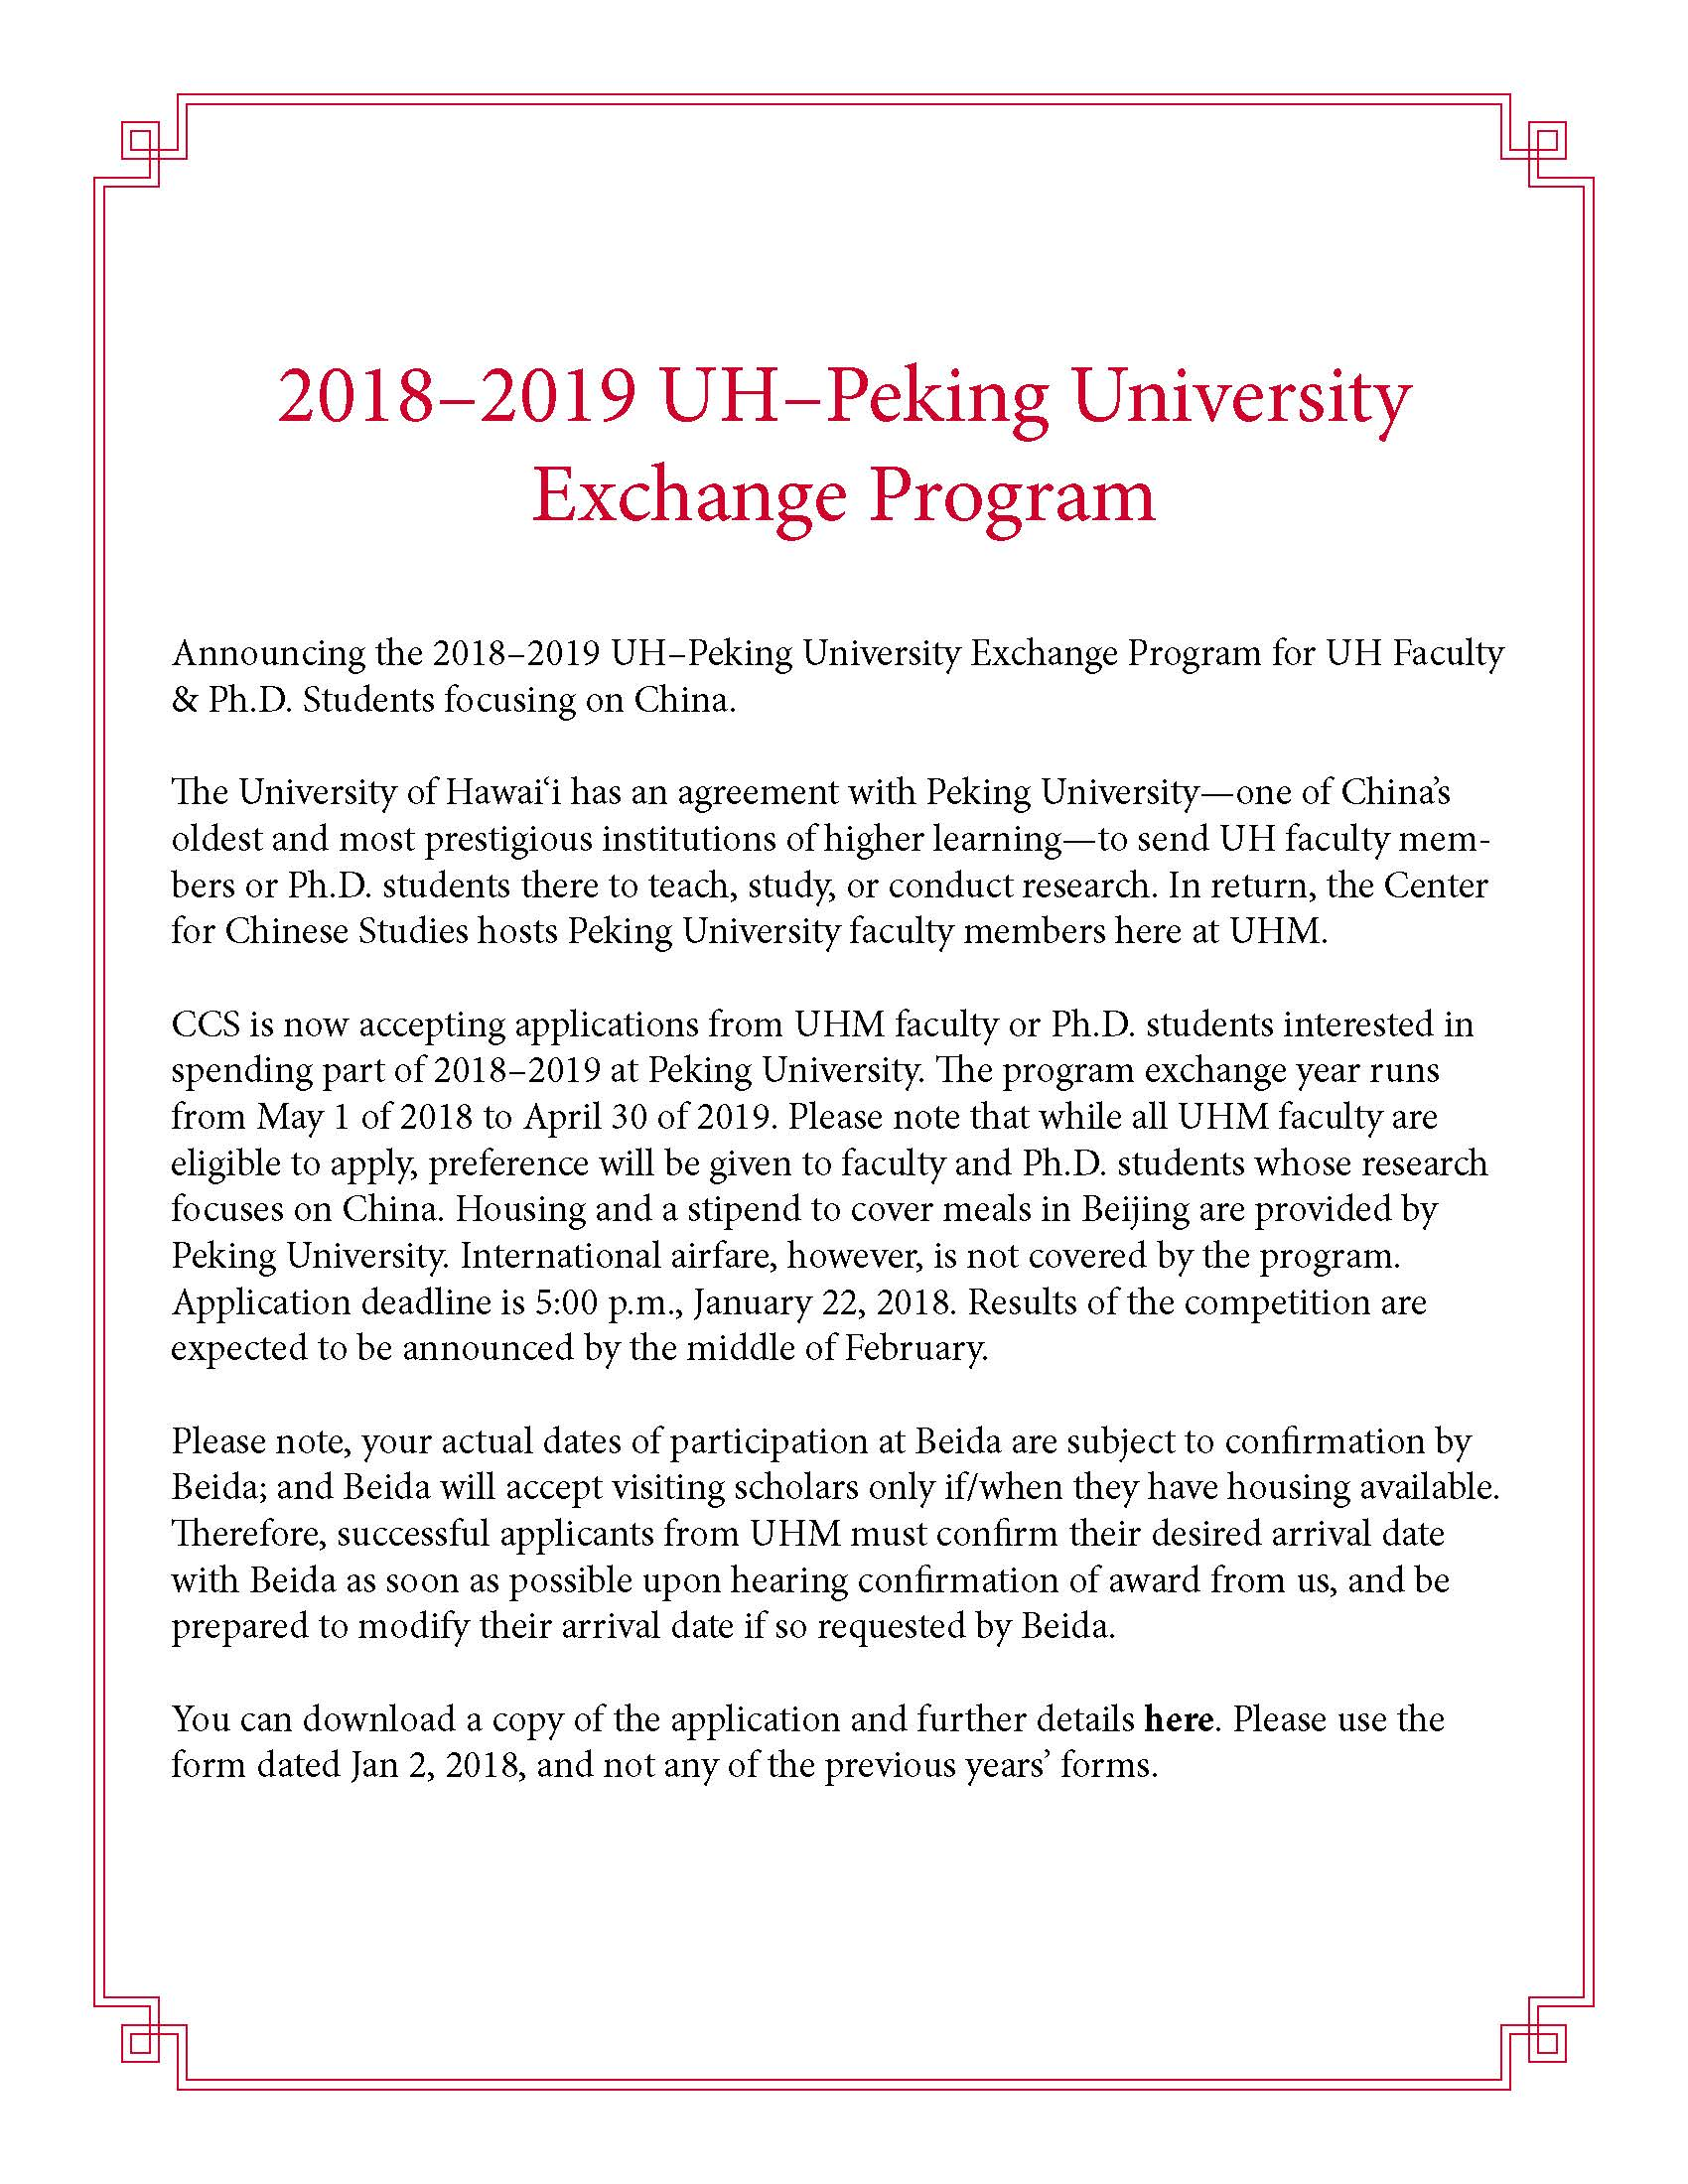 UHM-Peking University Exchange Program